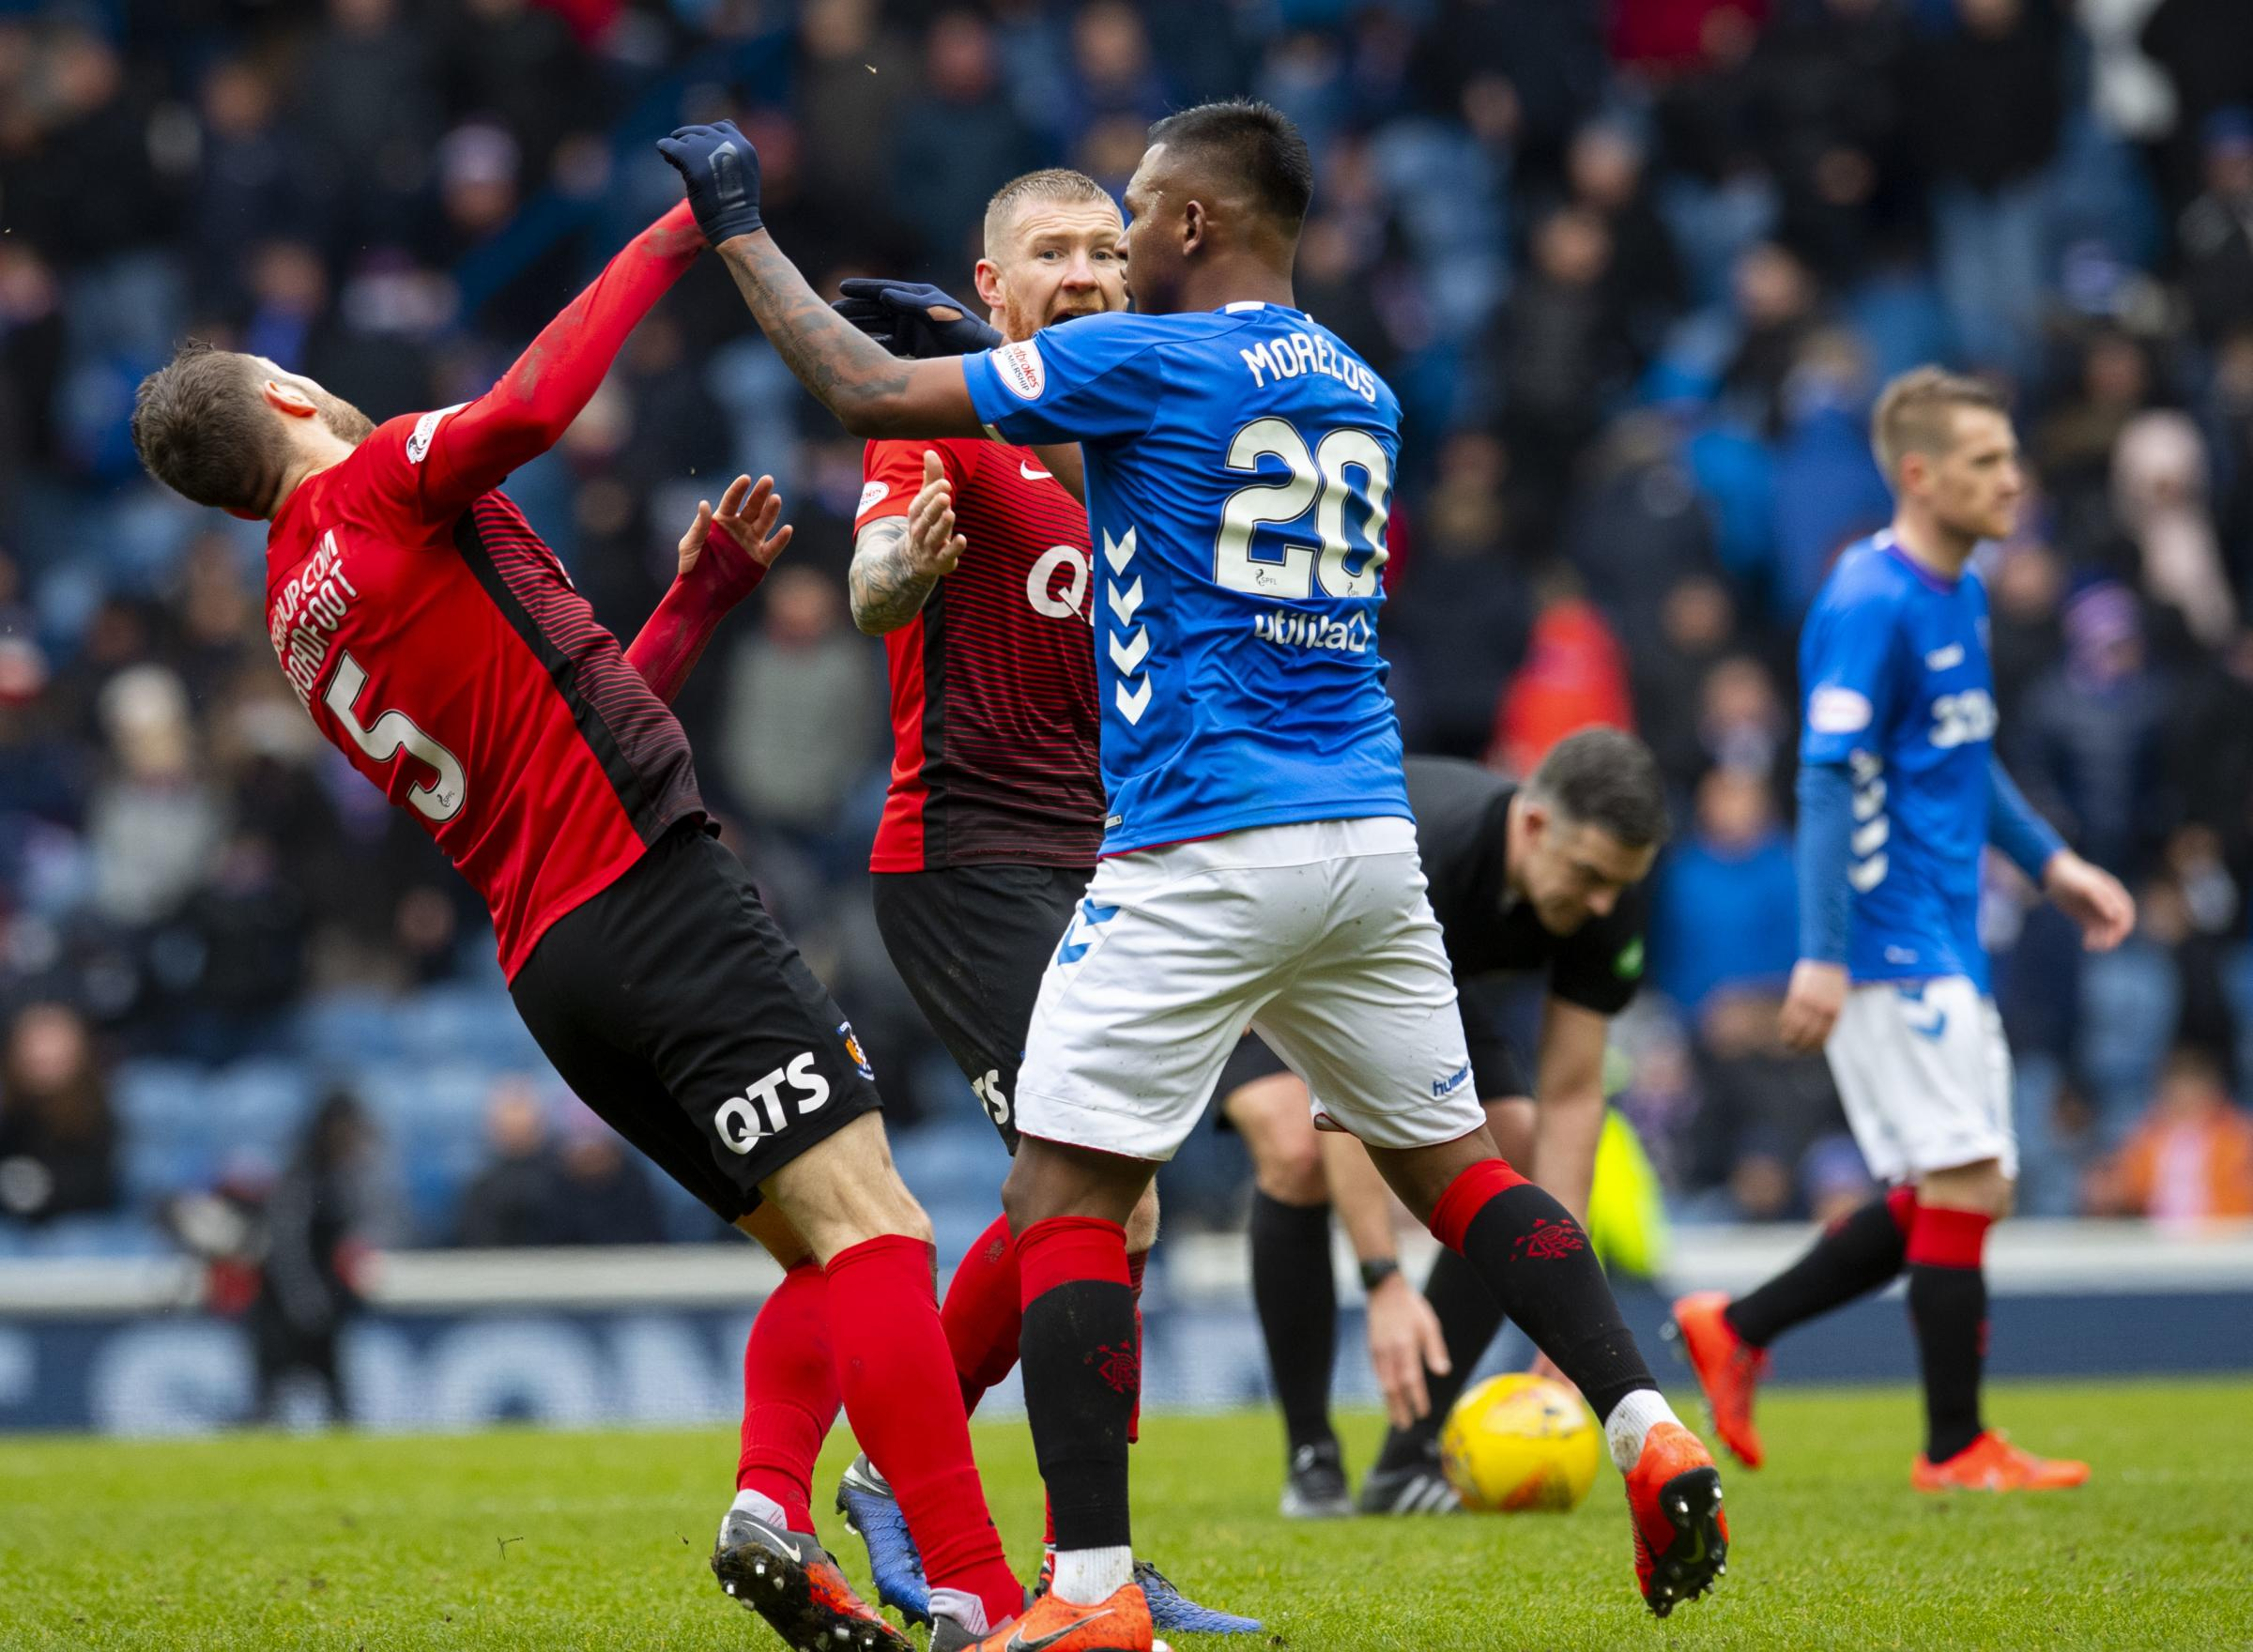 16/03/19 LADBROKES PREMIERSHIP.RANGERS V KILMARNOCK.IBROX - GLASGOW.Rangers Forward Alfredo Morelos (Right) and Kirk Broadfoot come together at Half Time.